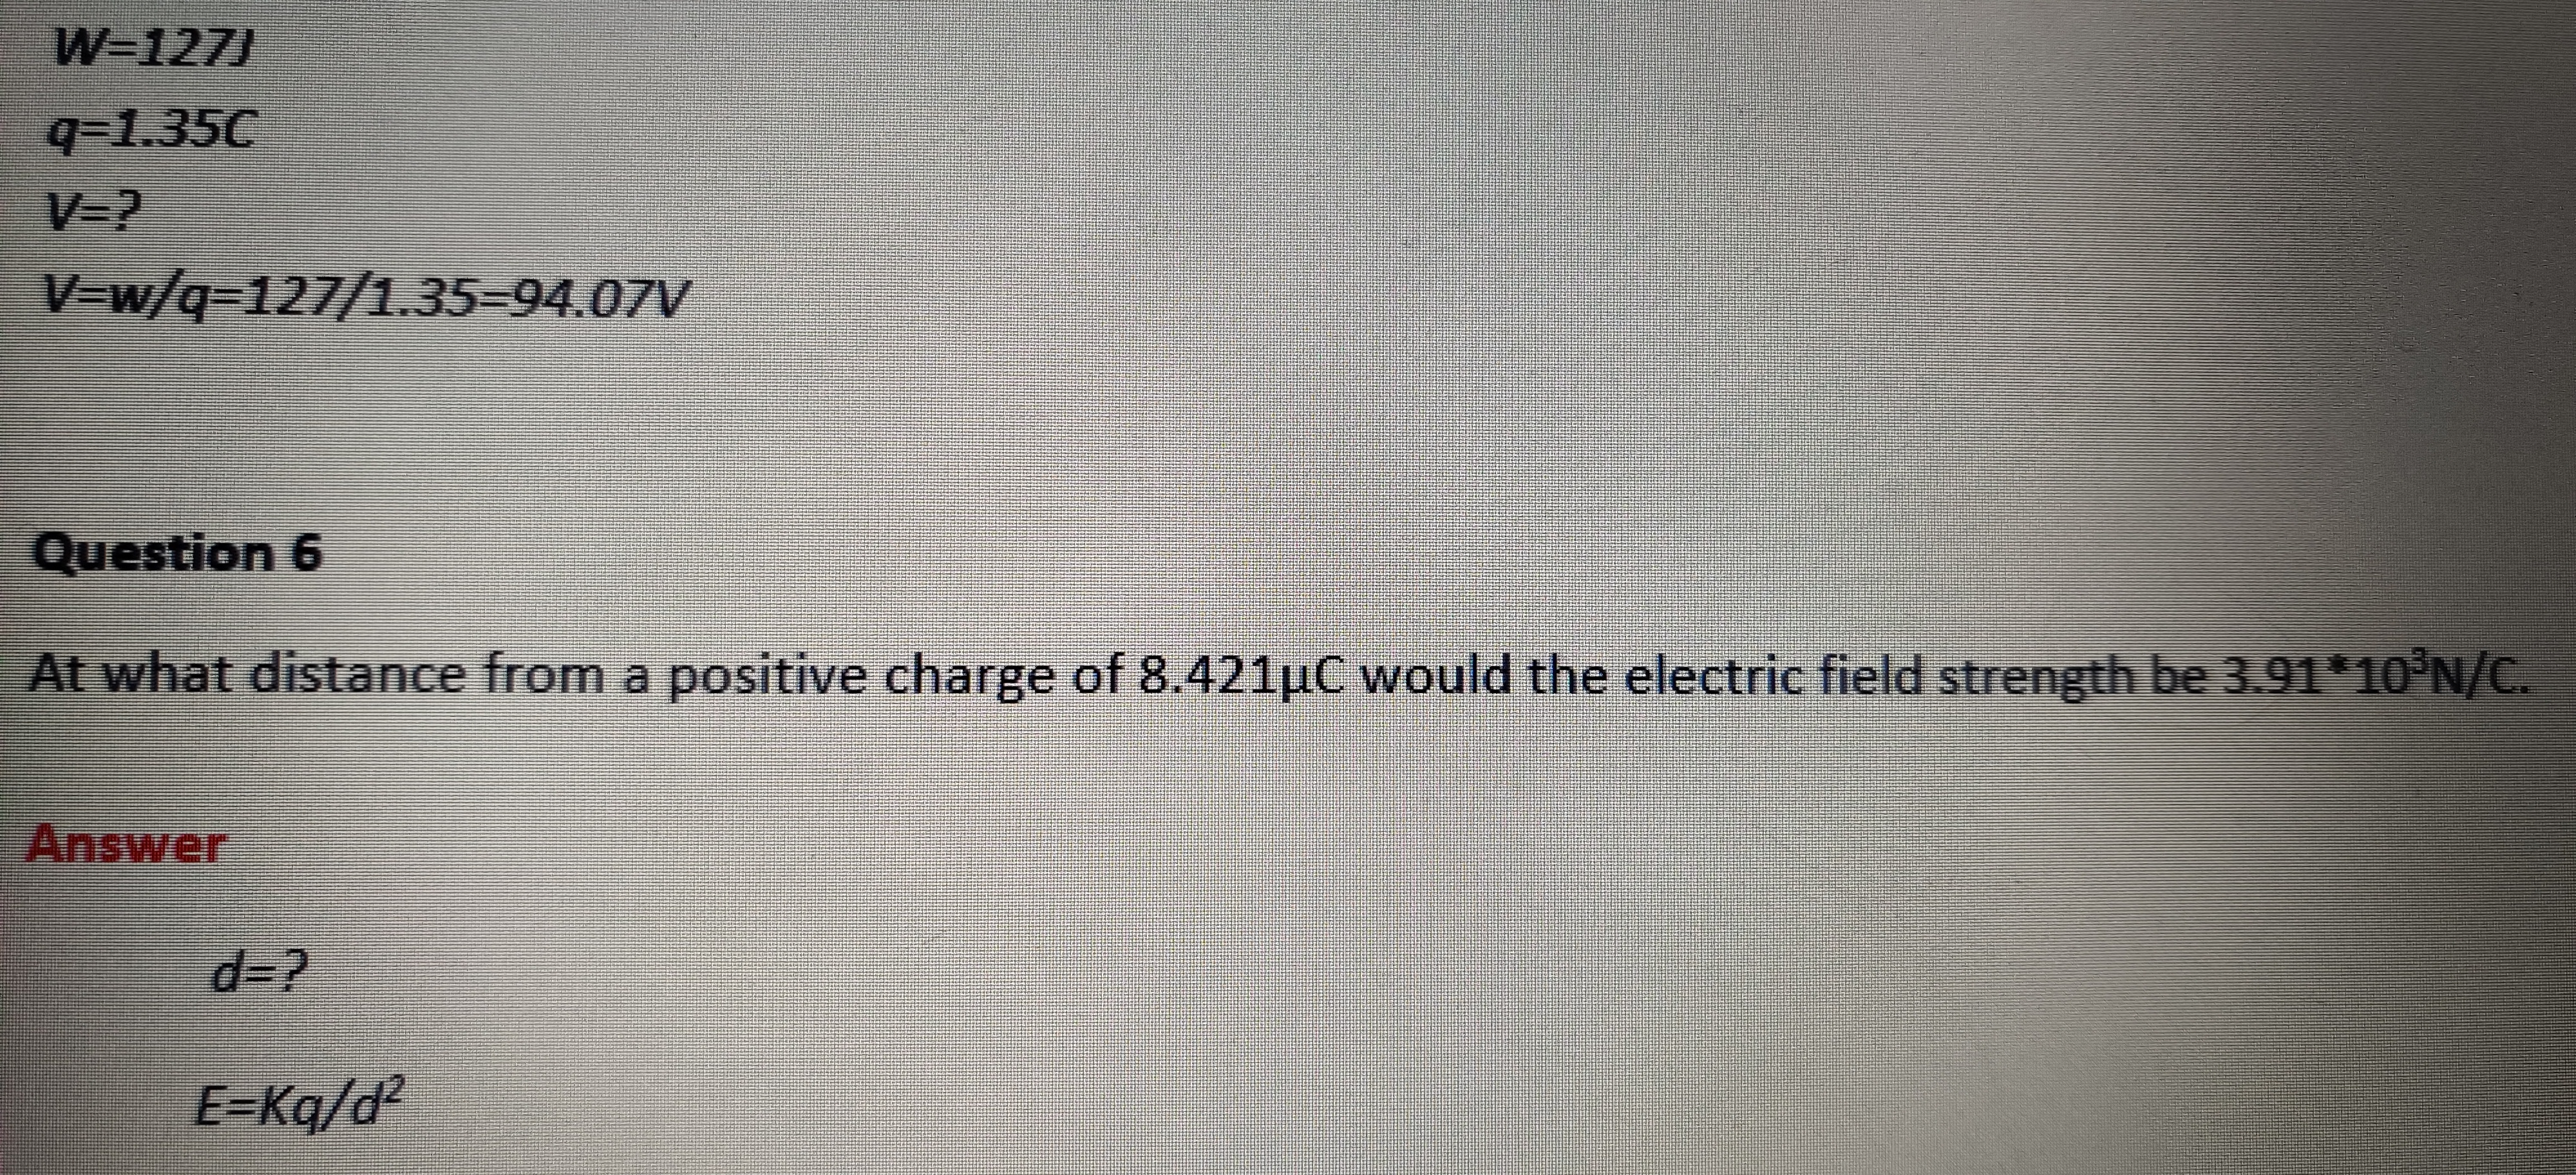 W=127J q-1.35C V=? V=w/q3127/1.35-94.07V Question 6 At what distance from a positive charge of 8.421µC would the electric field strength be 3.91*10°N/C. Answer d%3? E=Kq/d?